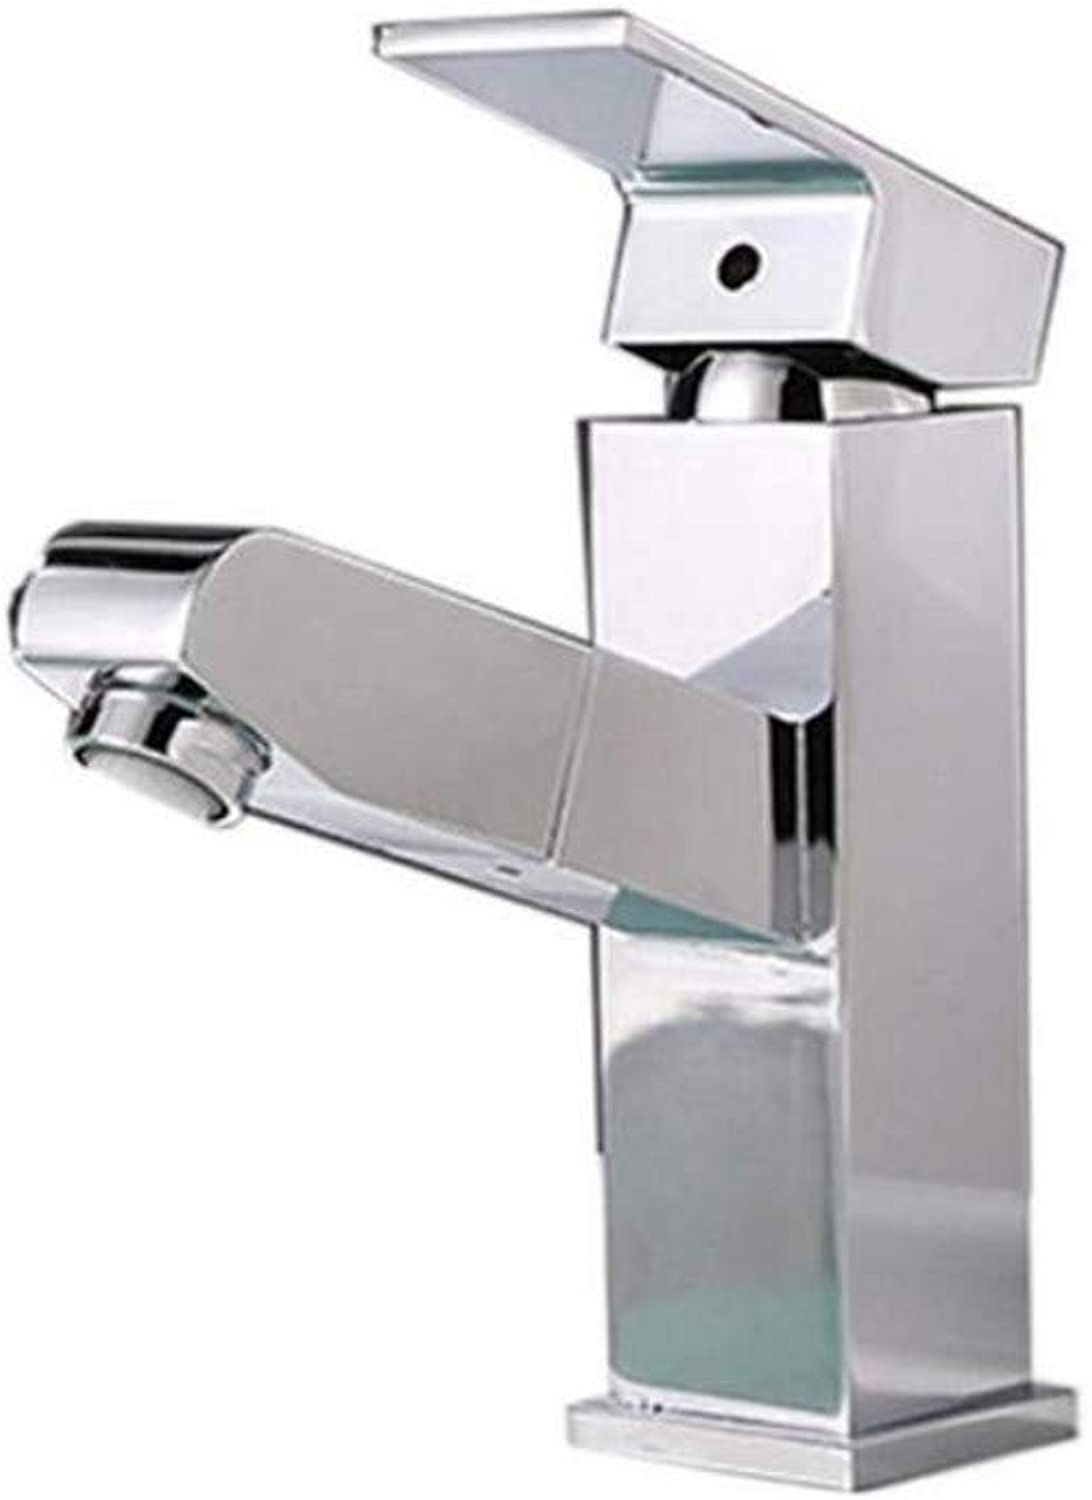 Taps Kitchen Sinkbathroom Square Shape Pull Out Basin Faucet Brass Chrome Sink Mixer